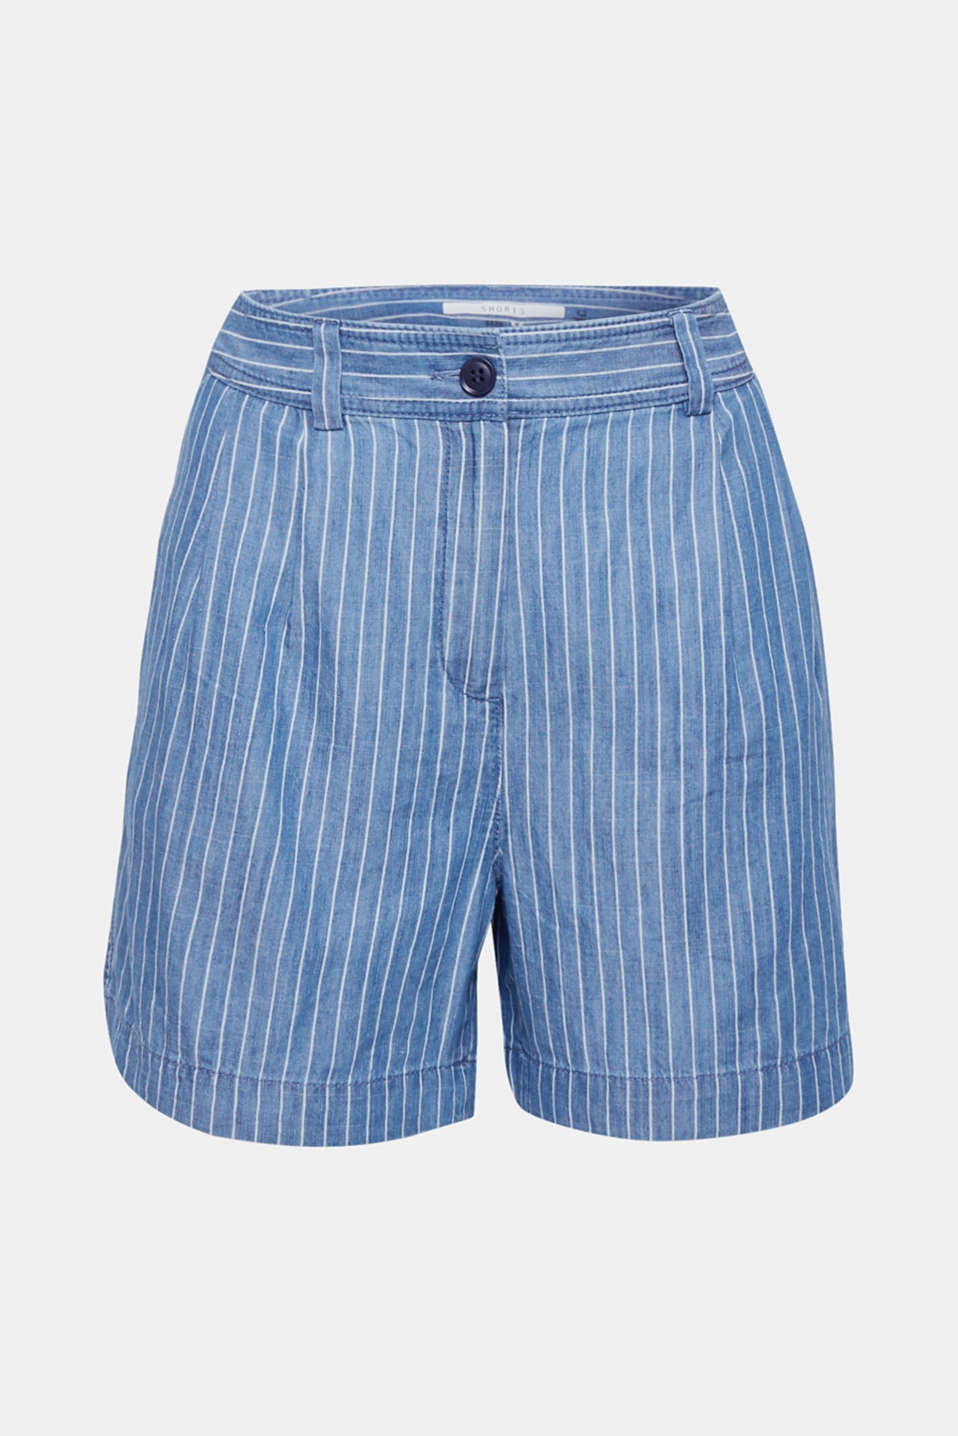 Striped, denim-effect shorts made of blended lyocell, GREY BLUE, detail image number 7